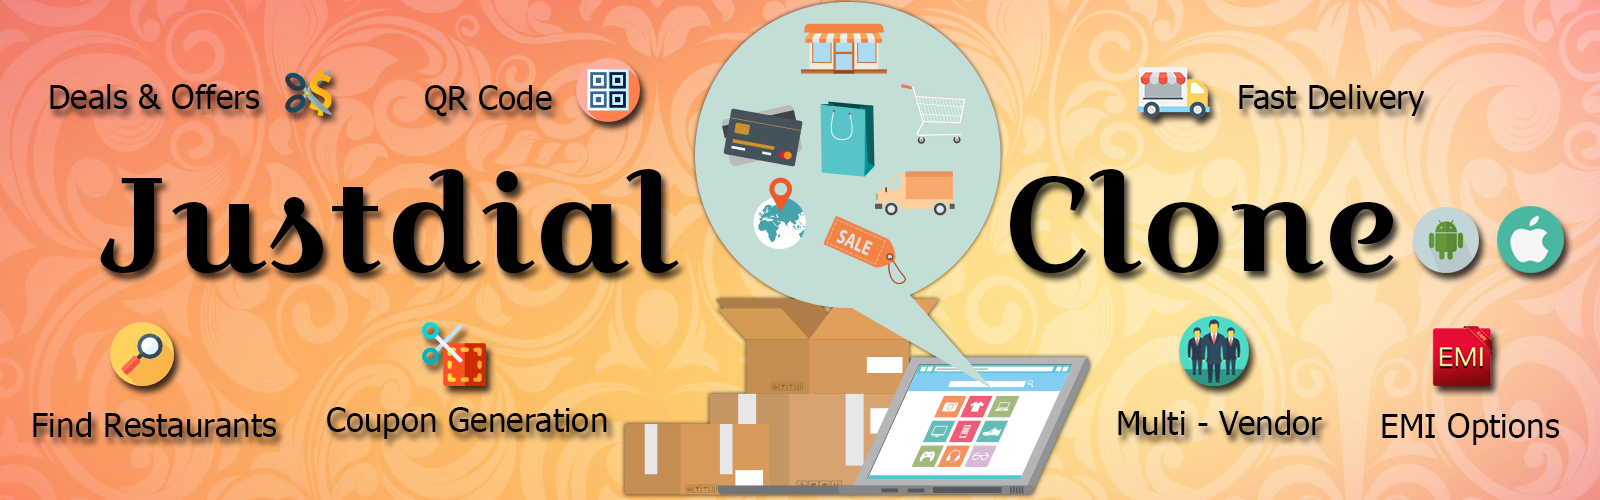 doditsolutions-Justdial Clone Banner